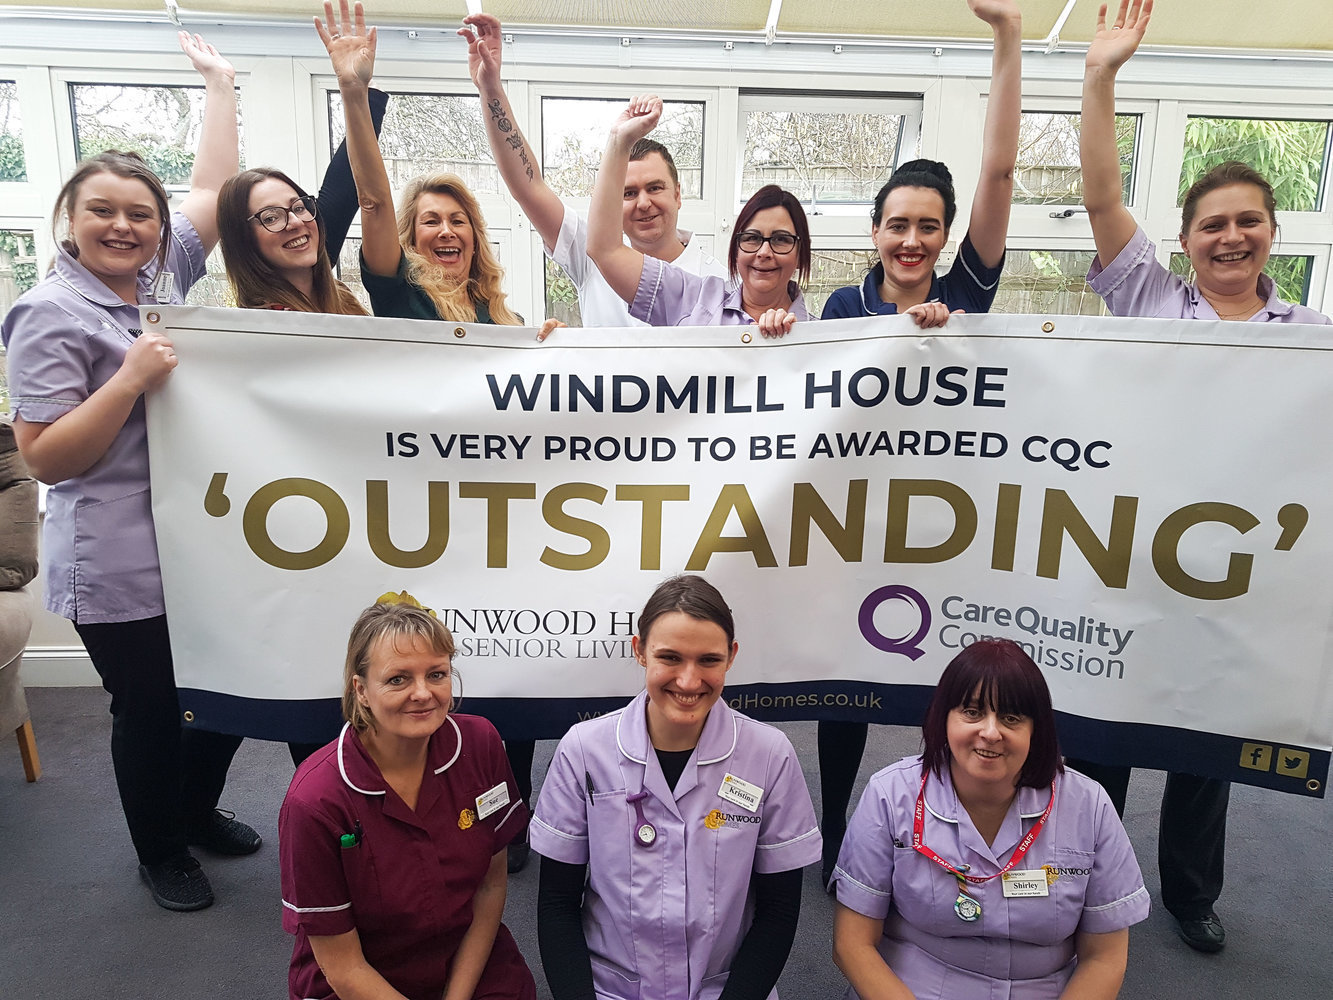 Windmill House achieves 'Outstanding' CQC rating